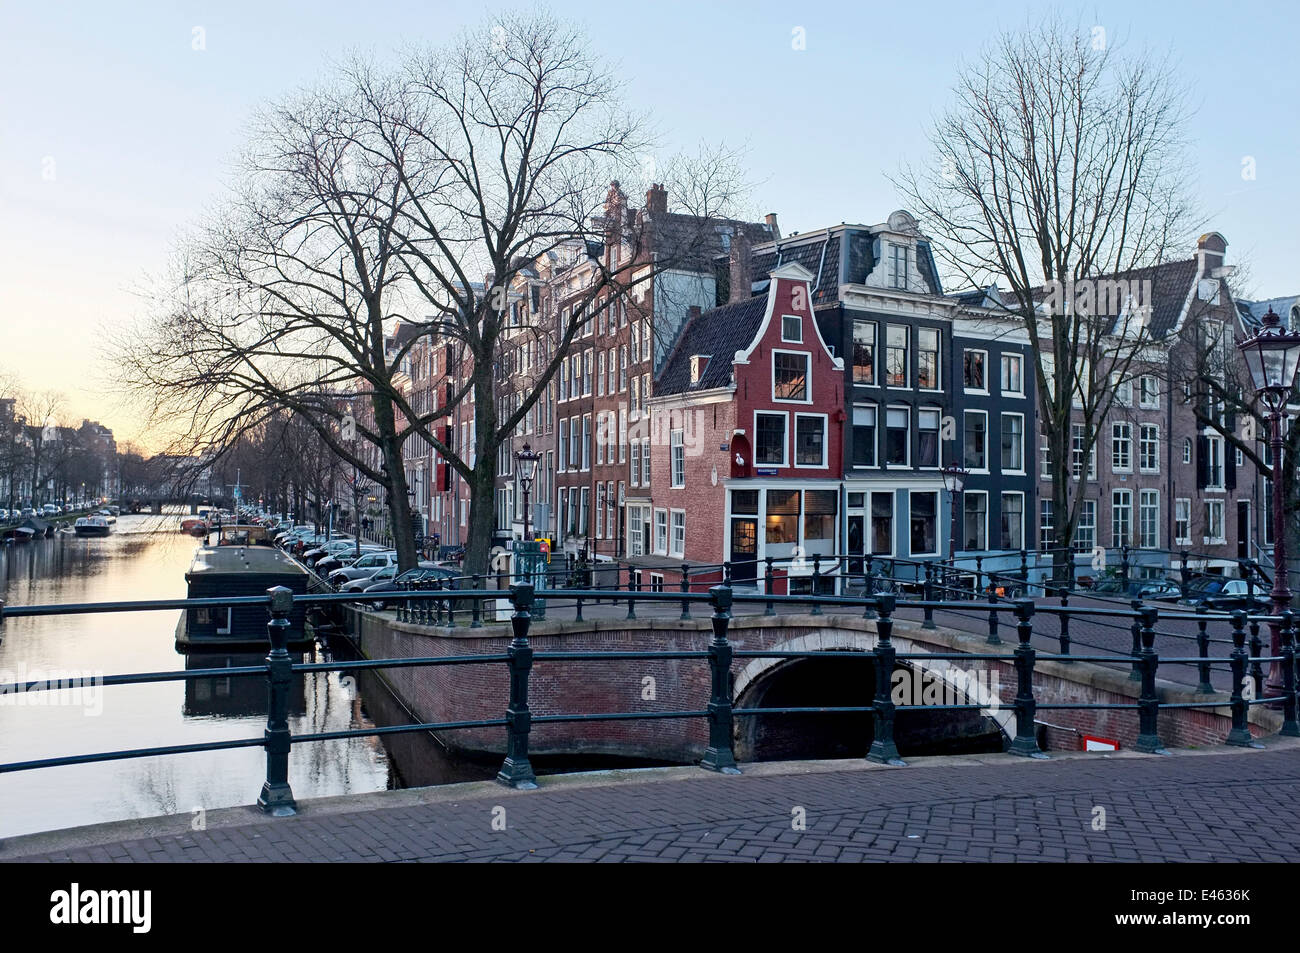 A VIEW ACROSS BRIDGE AND CANAL Prinsengracht/Reguliersgracht, AMSTERDAM, HOLLAND - Stock Image